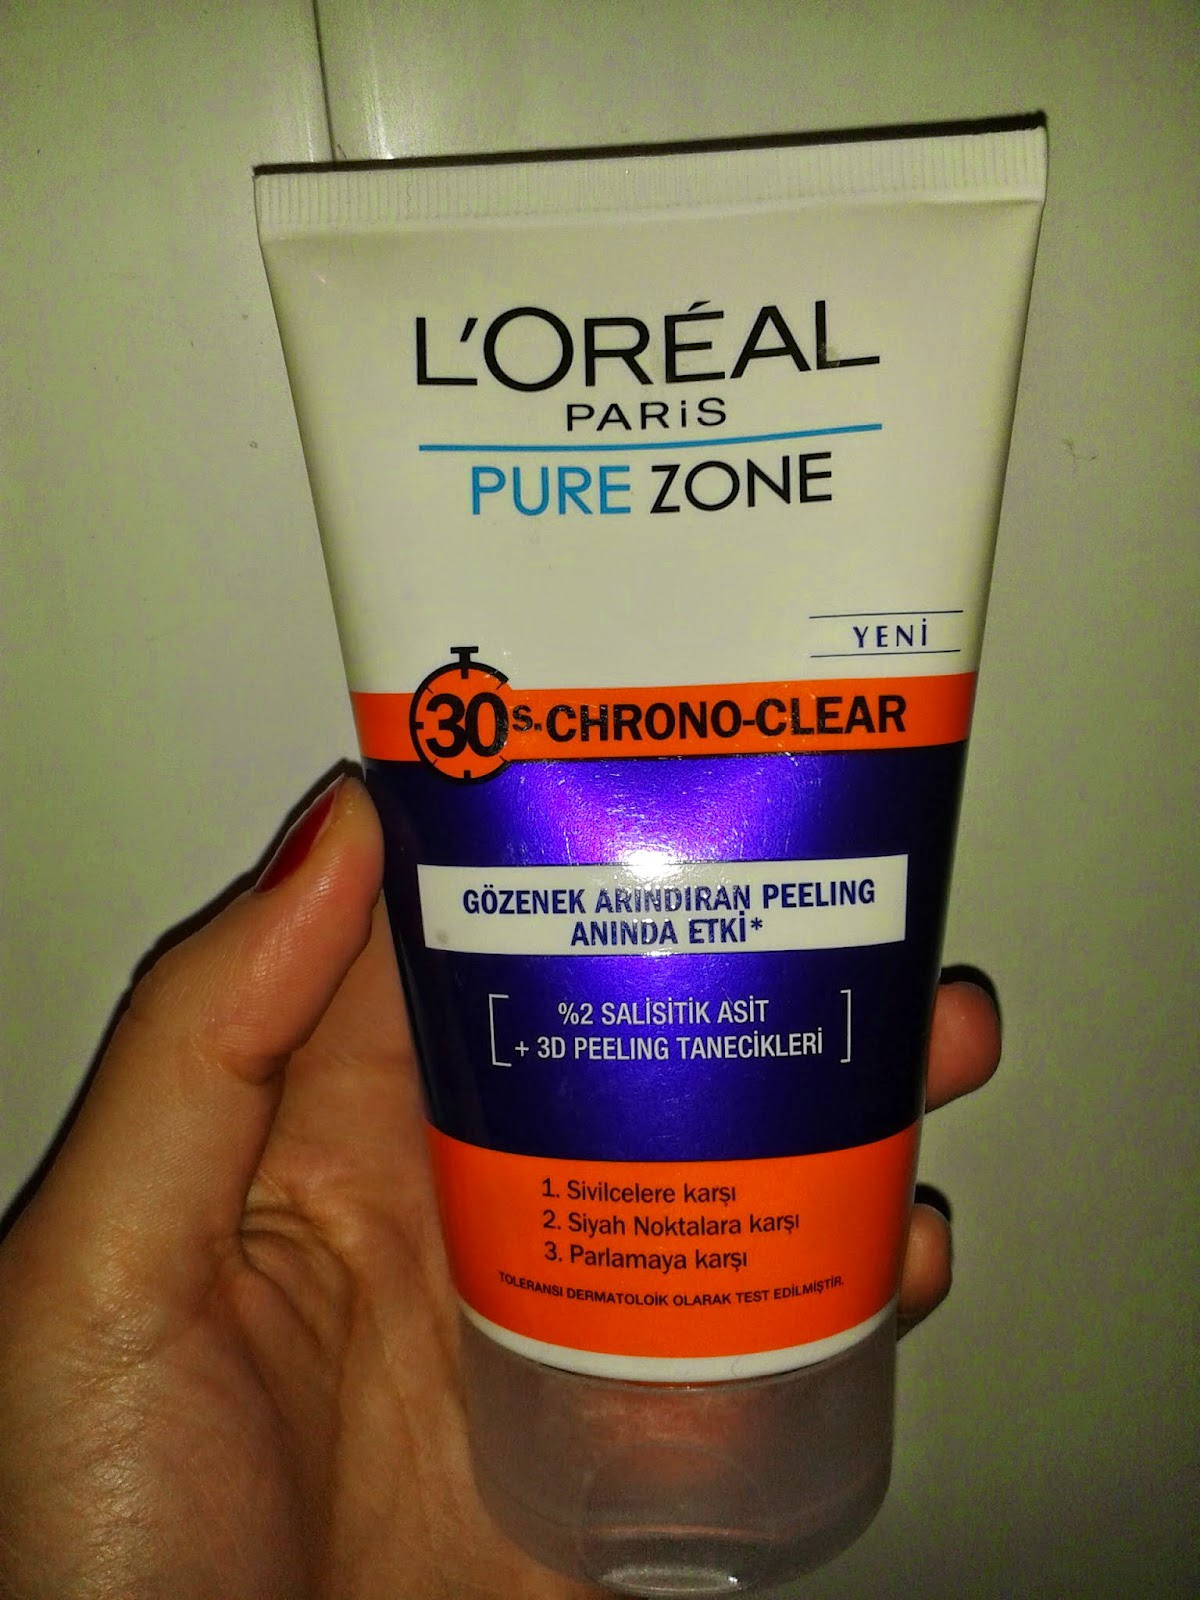 loreal pure zone chrone clear peeling